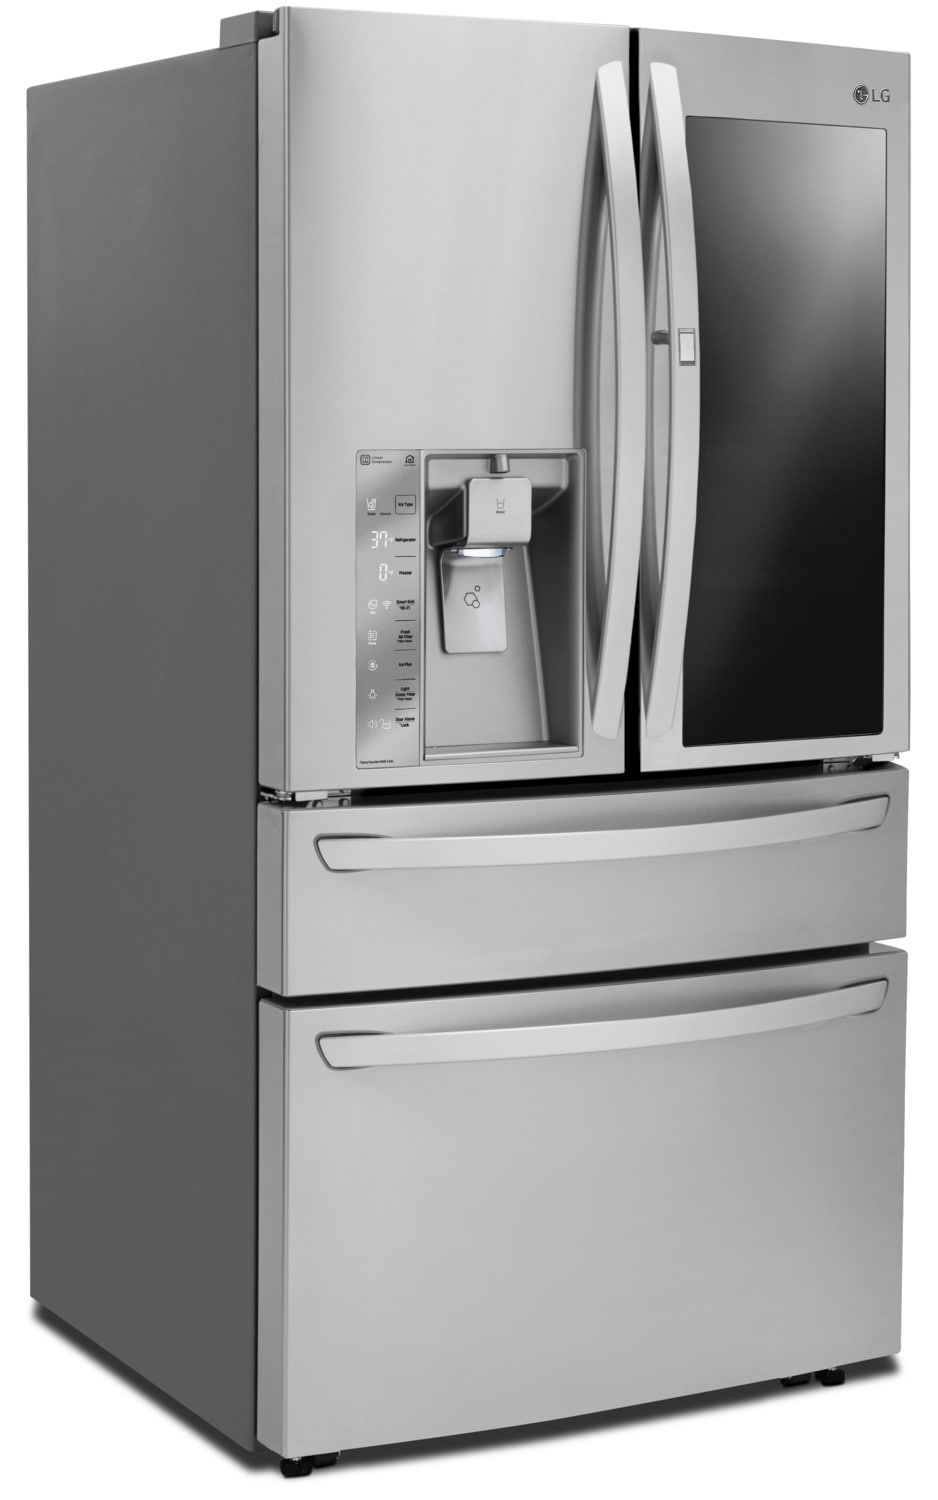 lg 30 cu ft french door refrigerator with instaview door in door lmxs30796s the brick. Black Bedroom Furniture Sets. Home Design Ideas